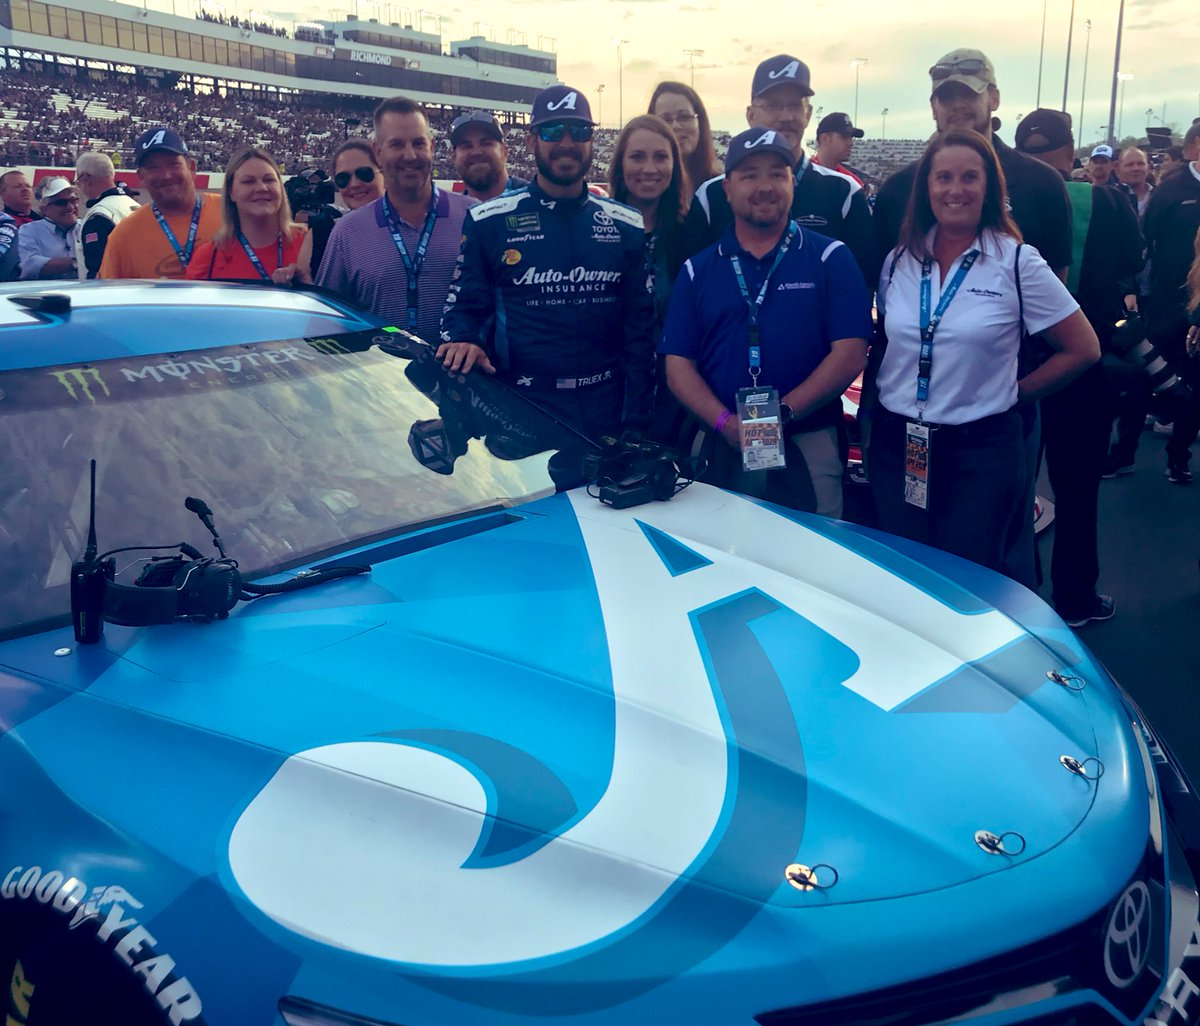 #MoodyBlue getting ready to #OwnTheTrack at the #ToyotaOwners @RichmondRaceway with @MartinTruex_Jr and smiling A-O associates.